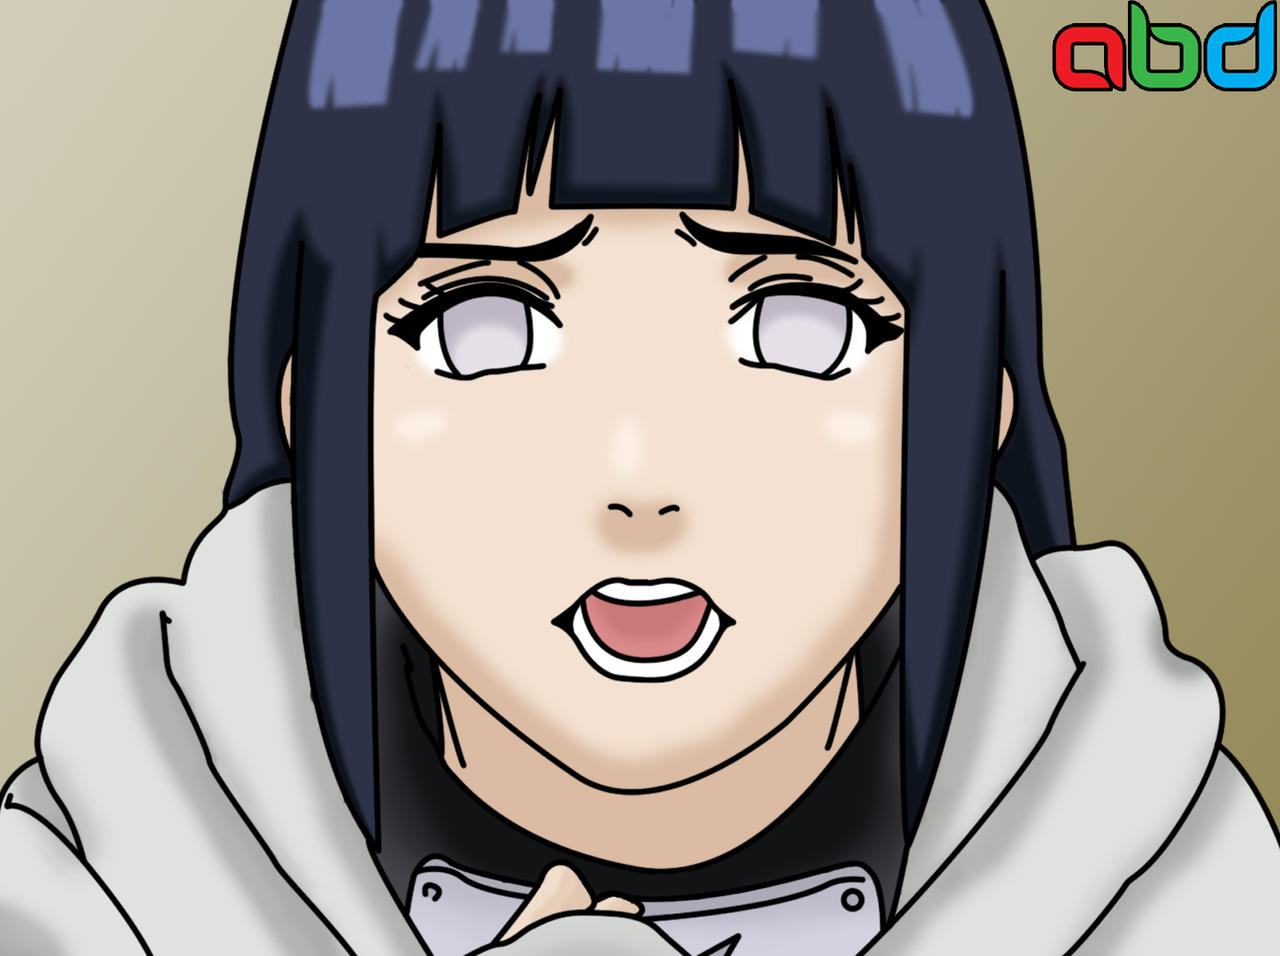 Hyuuga Hinata by XavierApp on DeviantArt